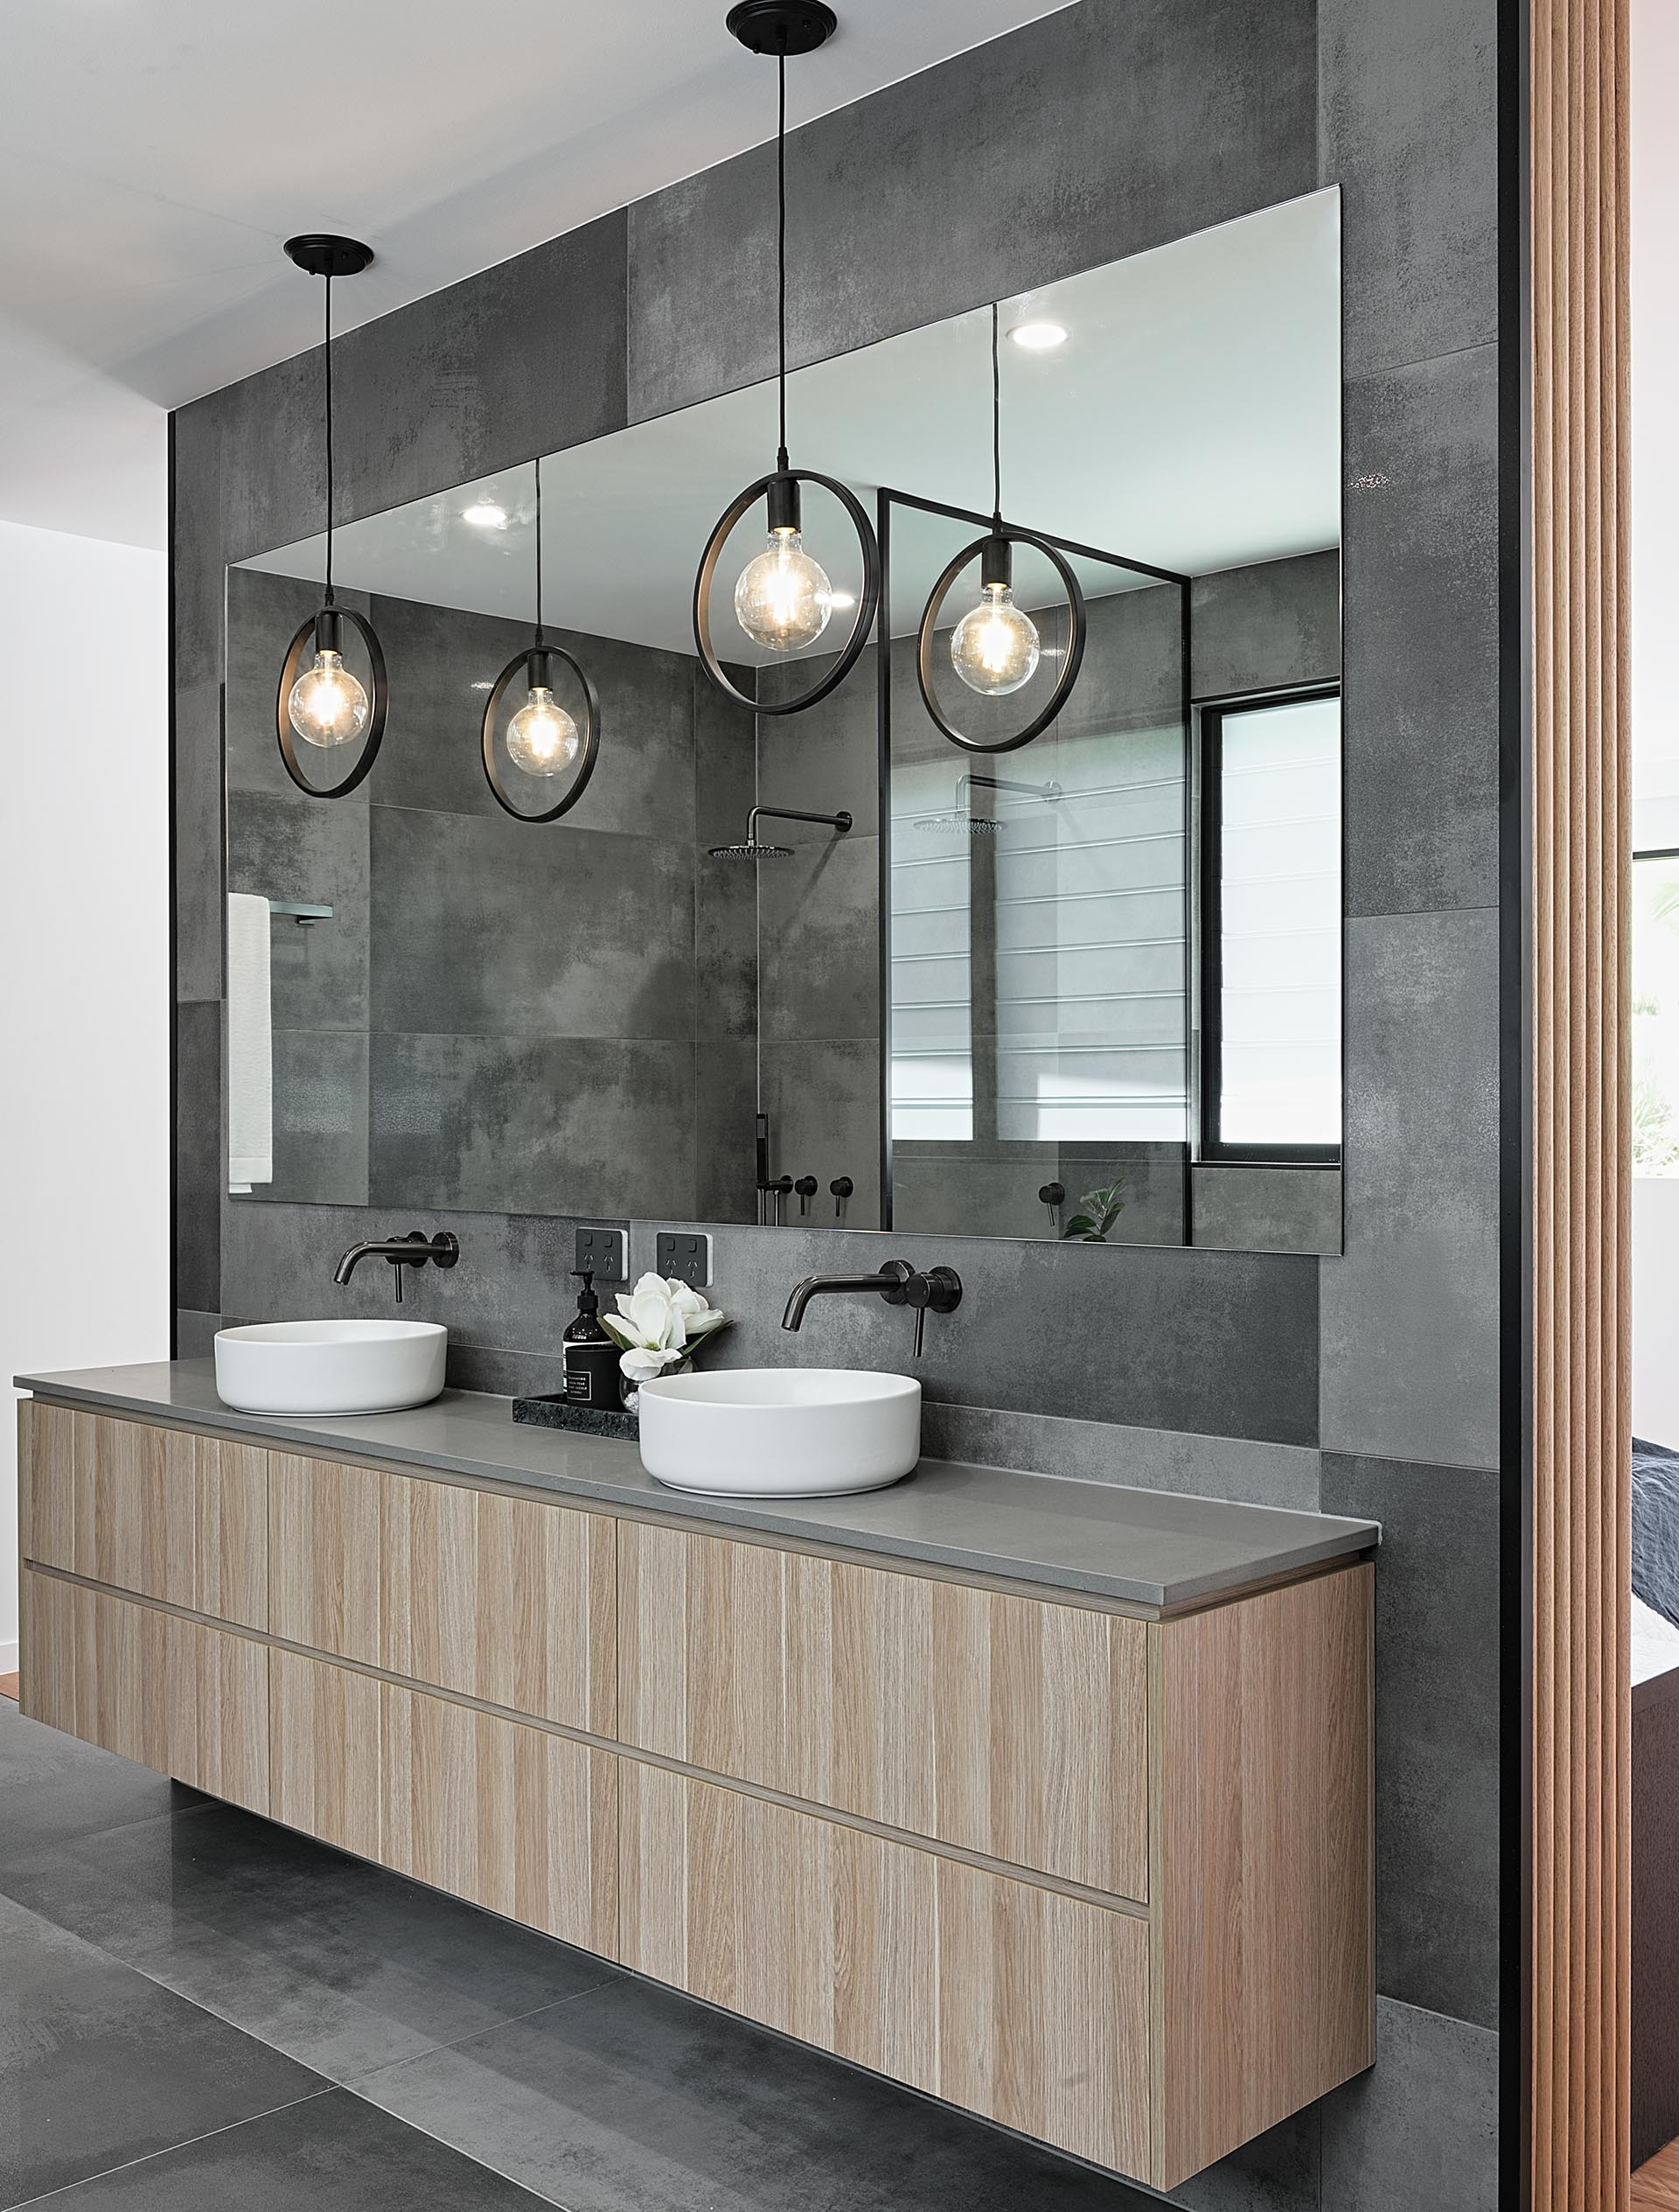 A modern bathroom vanity with wood cabinets, white sinks, a grey countertop, black accents, and two pendant lights.